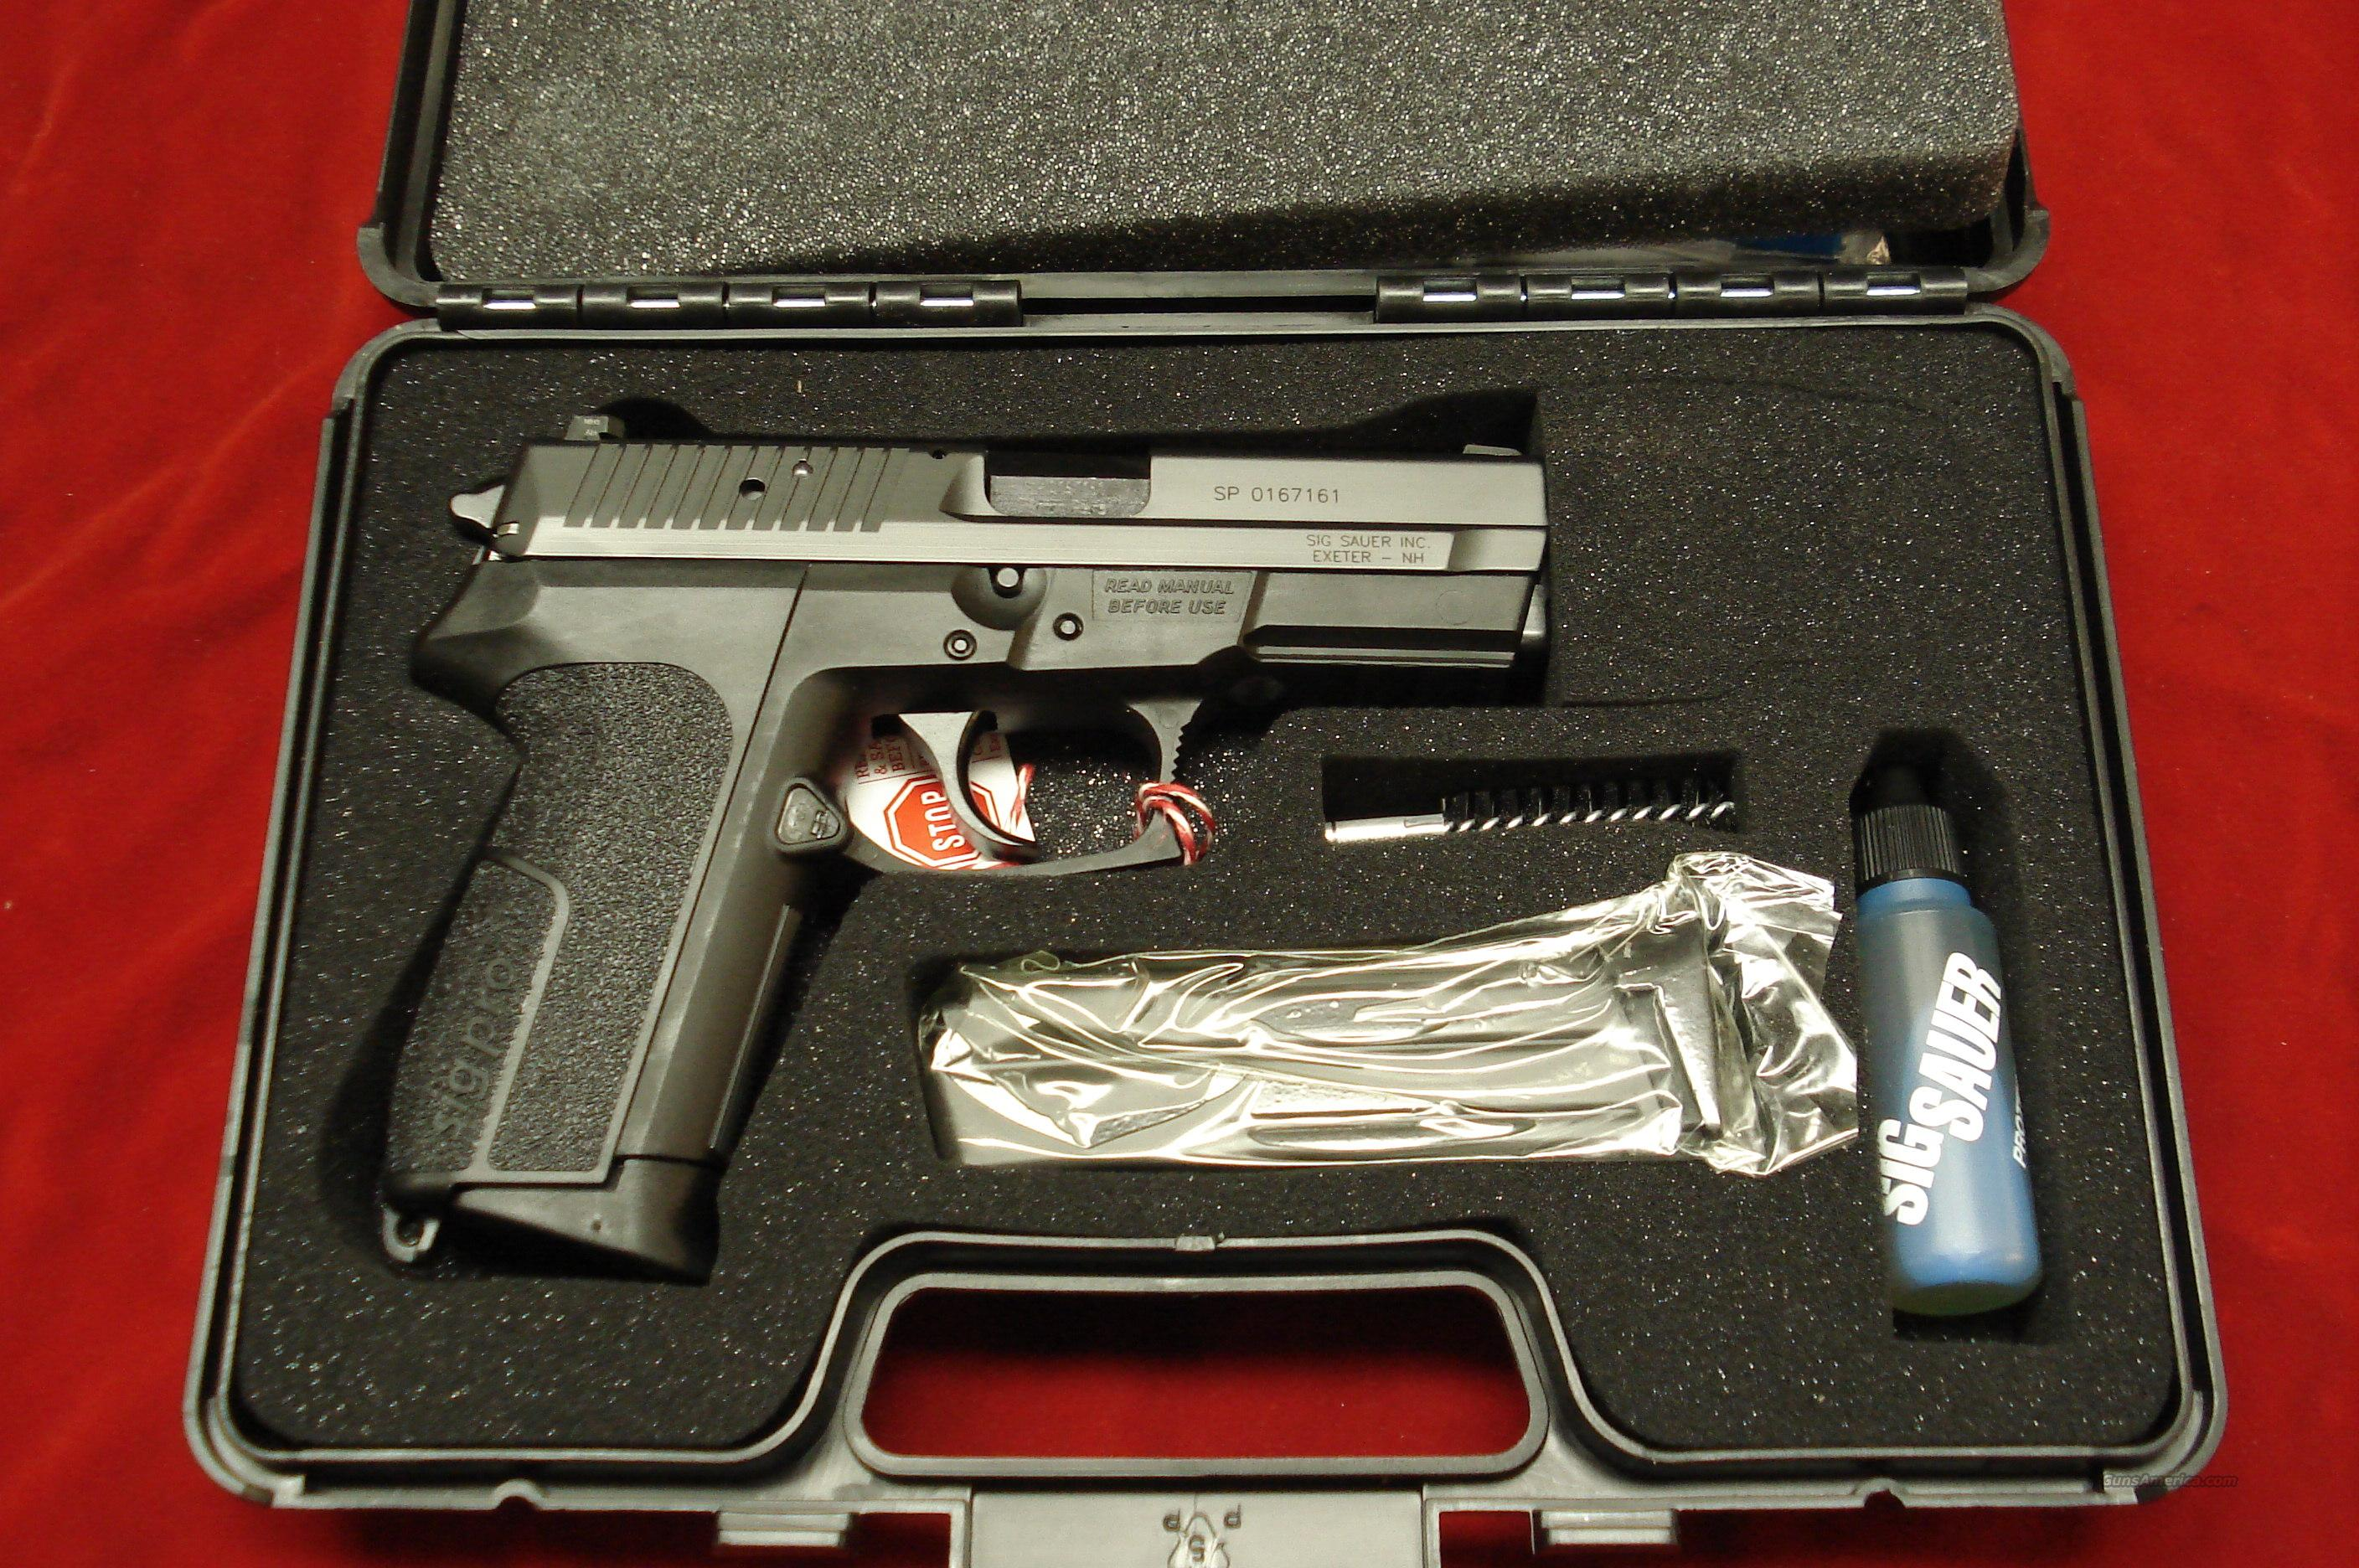 SIG SAUER SP 2022 SIG PRO 9MM NEW IN THE BOX  Guns > Pistols > Sig - Sauer/Sigarms Pistols > 2022